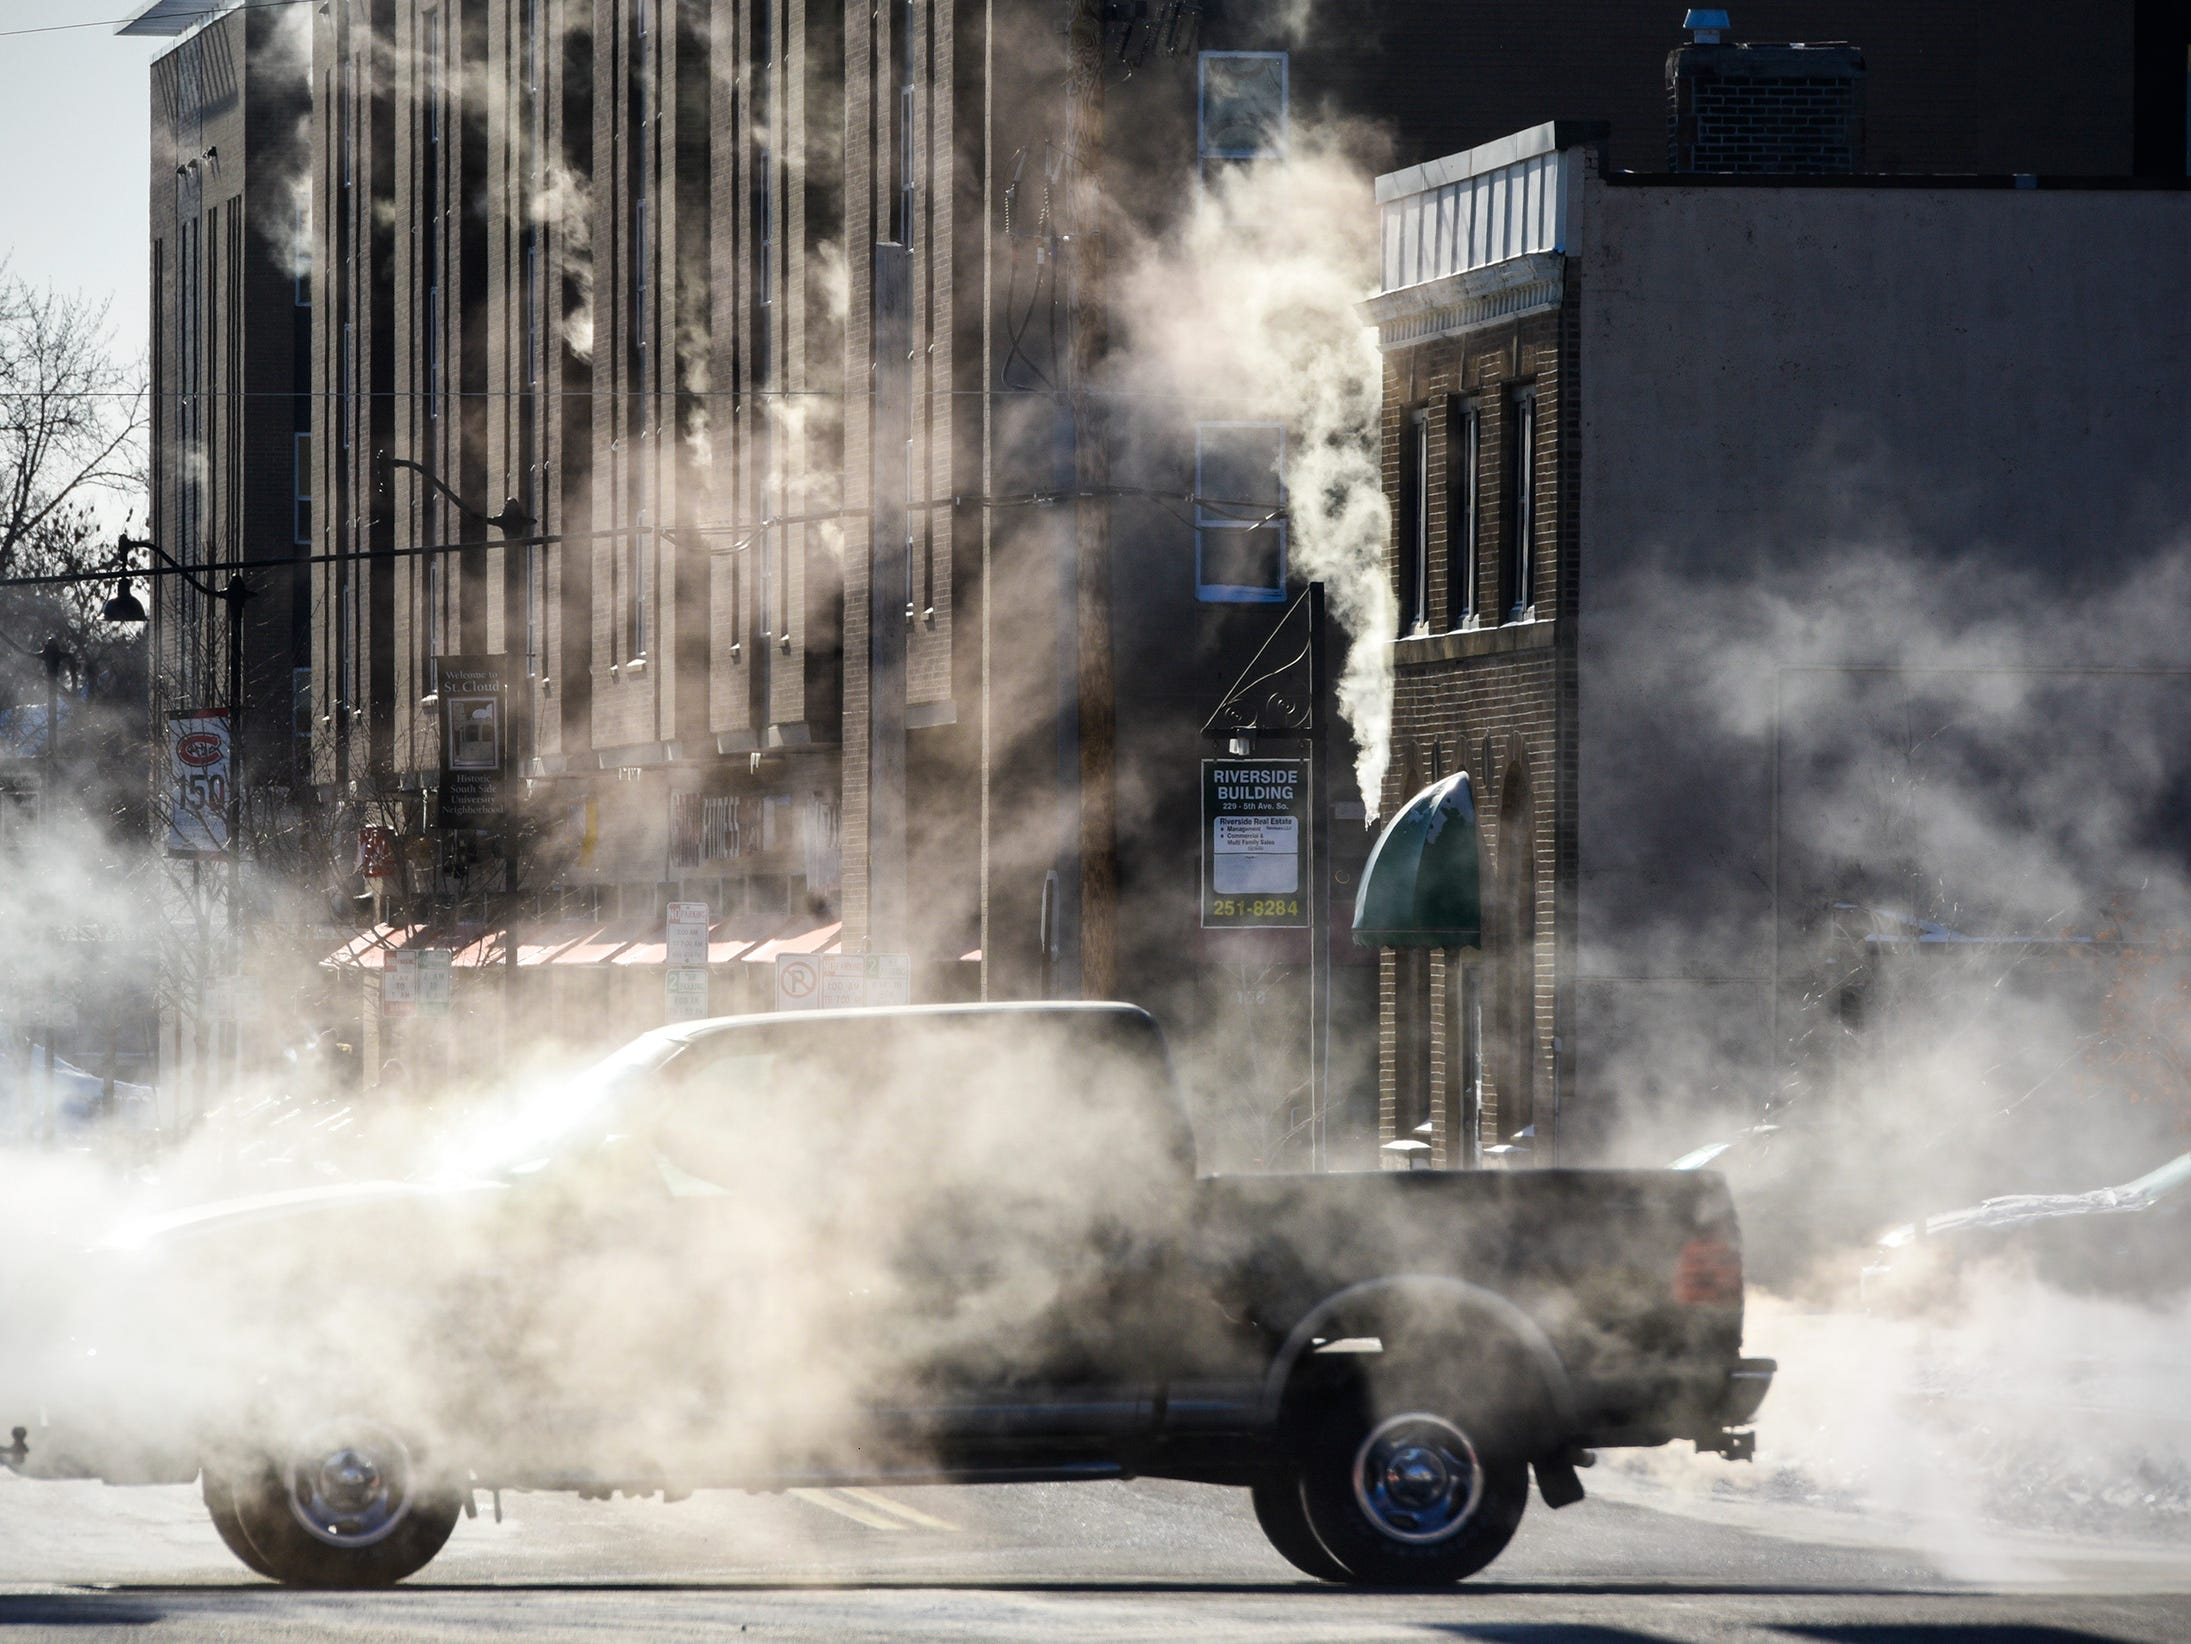 Morning sunlight highlights steam and exhaust as traffic travels along Minnesota Highway 23 near the intersection with Fifth Avenue South Wednesday, Jan. 30, 2019, in St. Cloud, Minn. Morning temperatures hovered around minus 30.